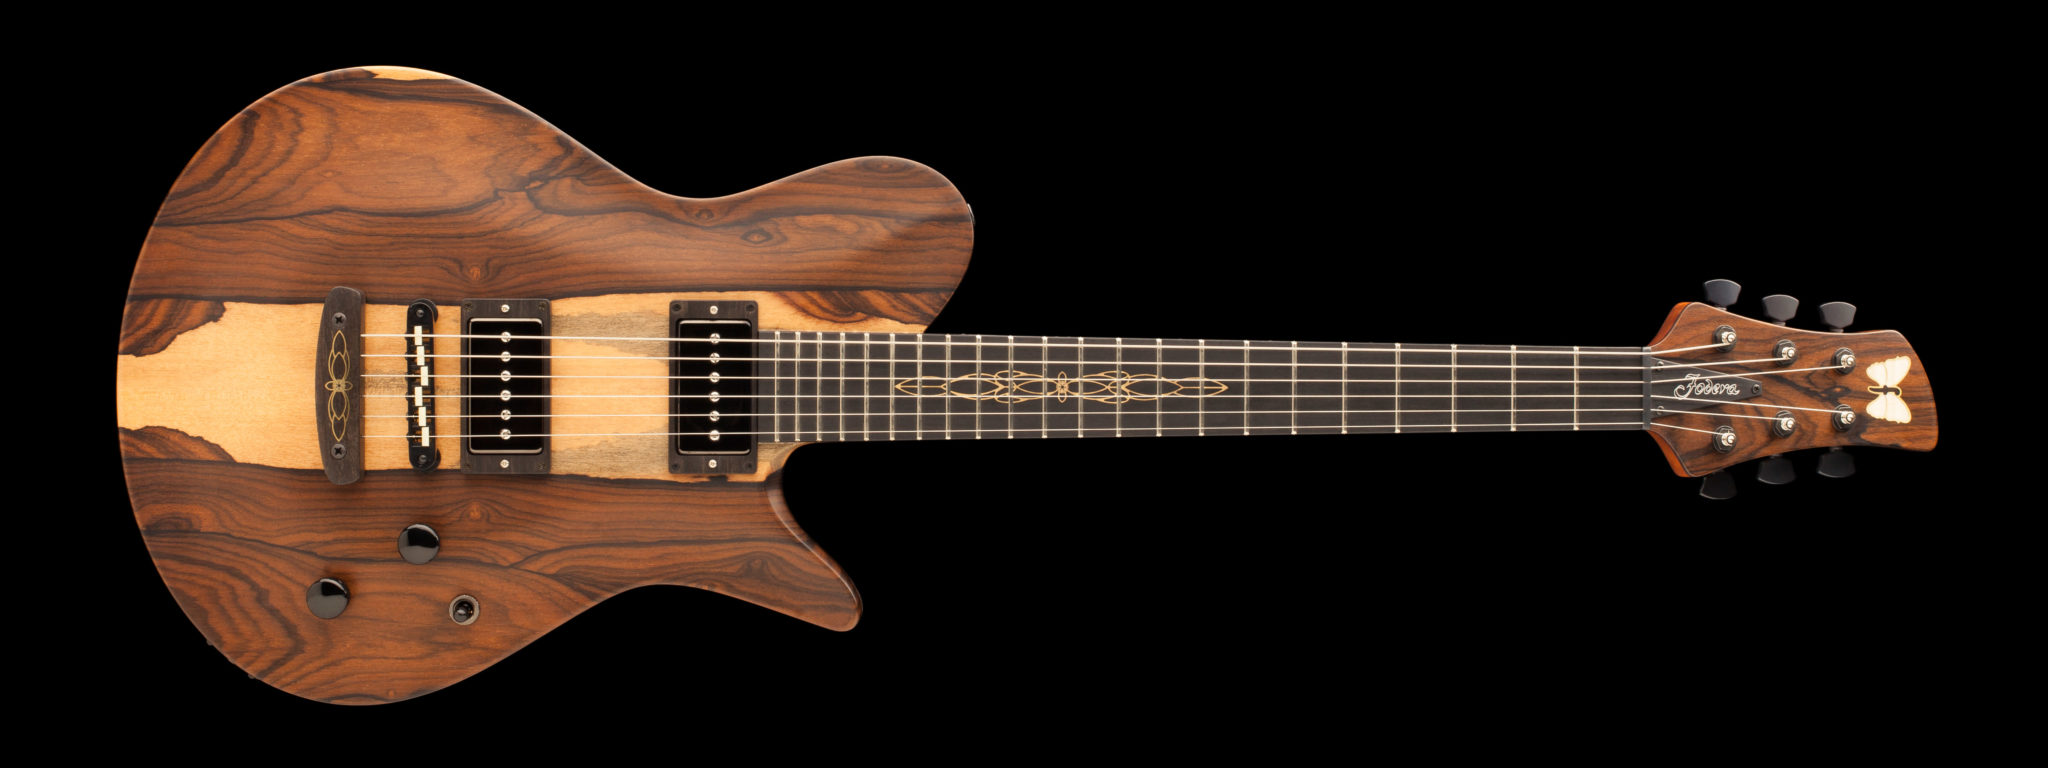 Fodera Introduces The Masterbuilt – Artdeco Guitar At NAMM 2018